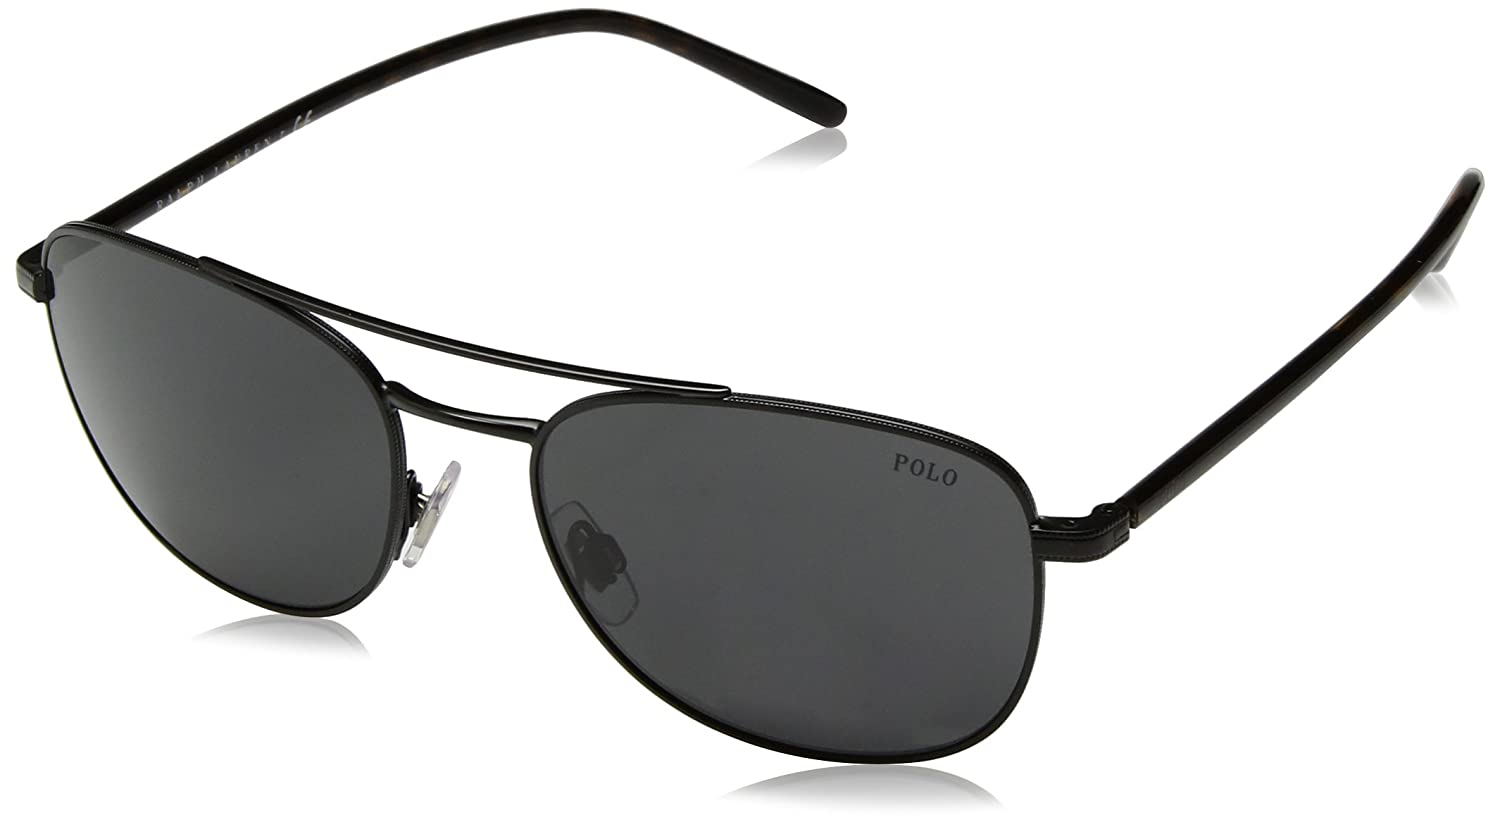 Ralph Lauren POLO 0PH3107 Gafas de sol, Semi Shiny Black, 55 ...